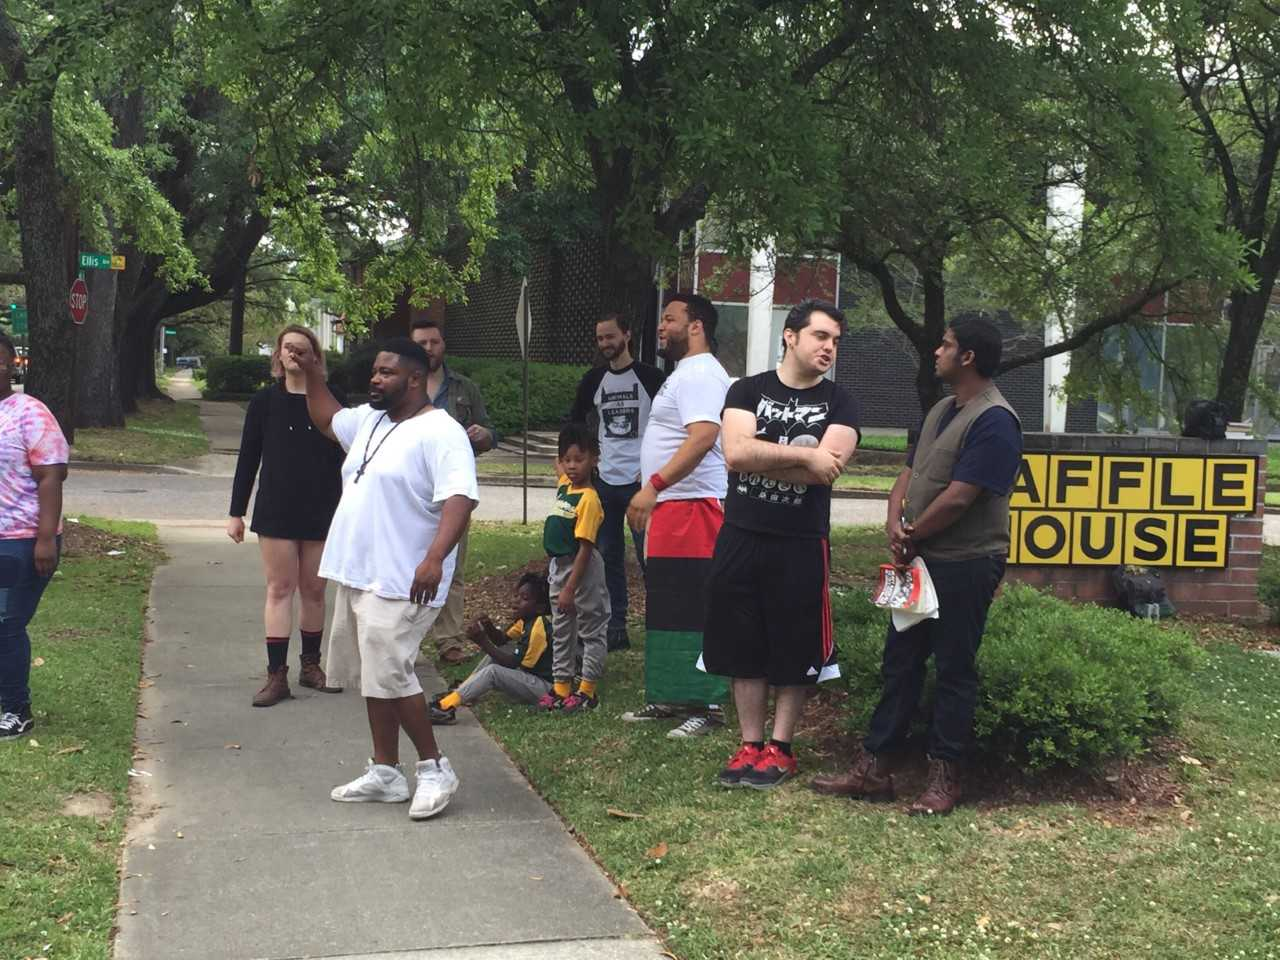 protests_1525534236541.jpg